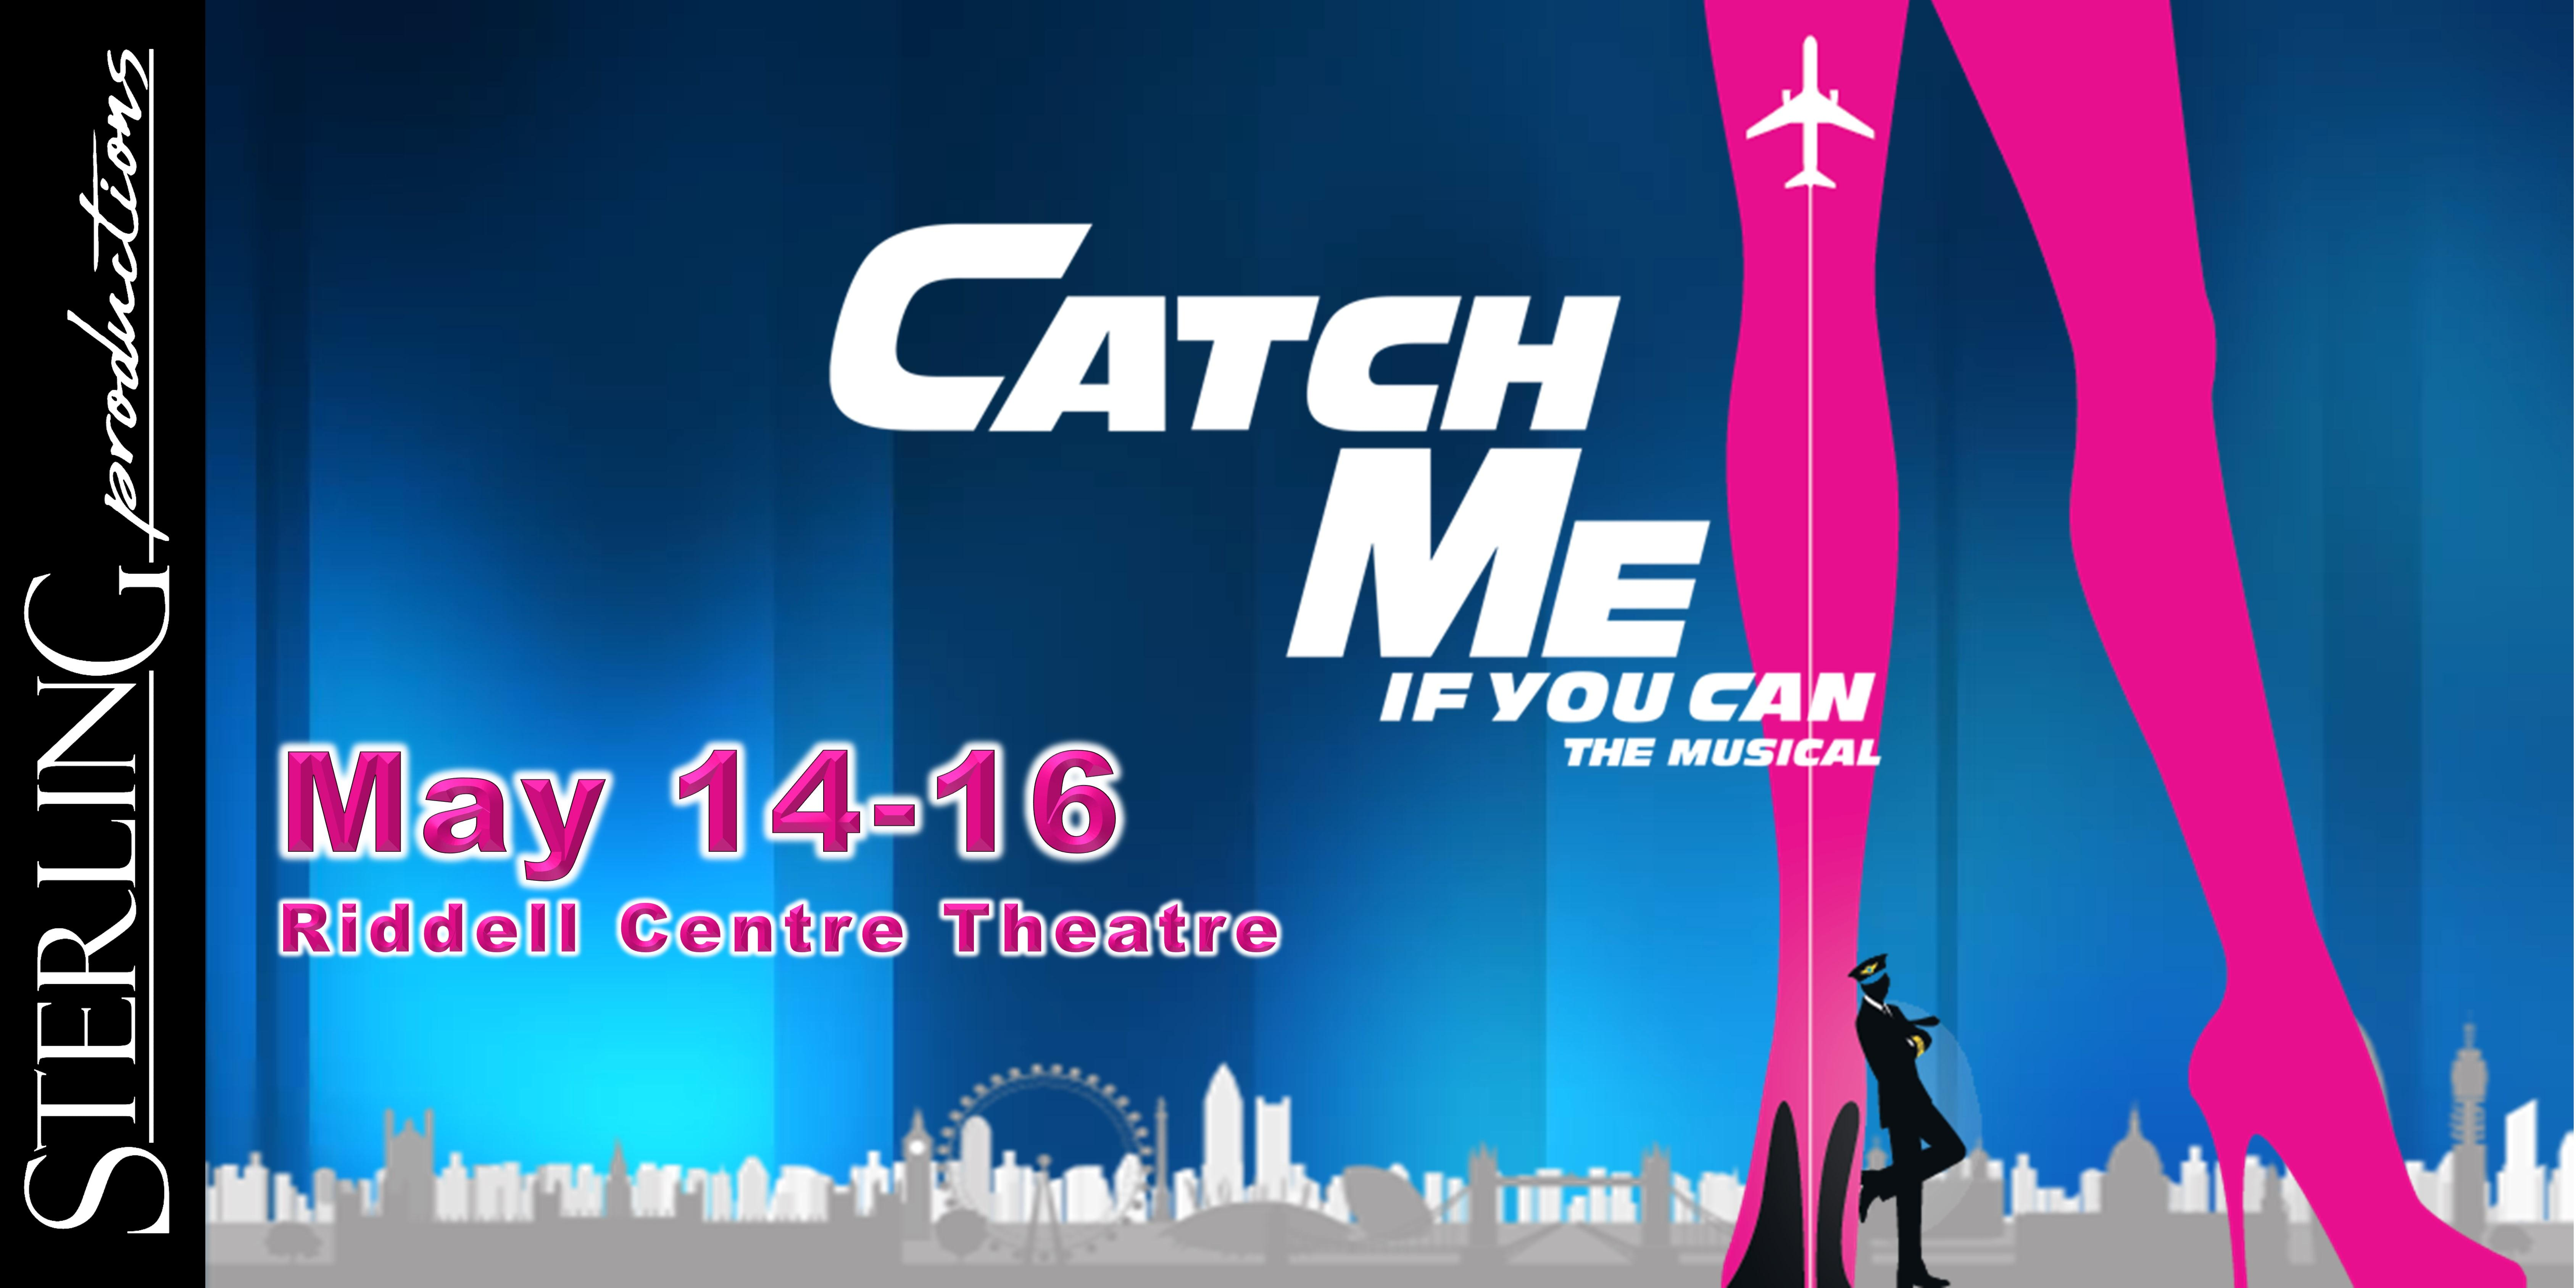 Catch Me If You Can - Wednesday